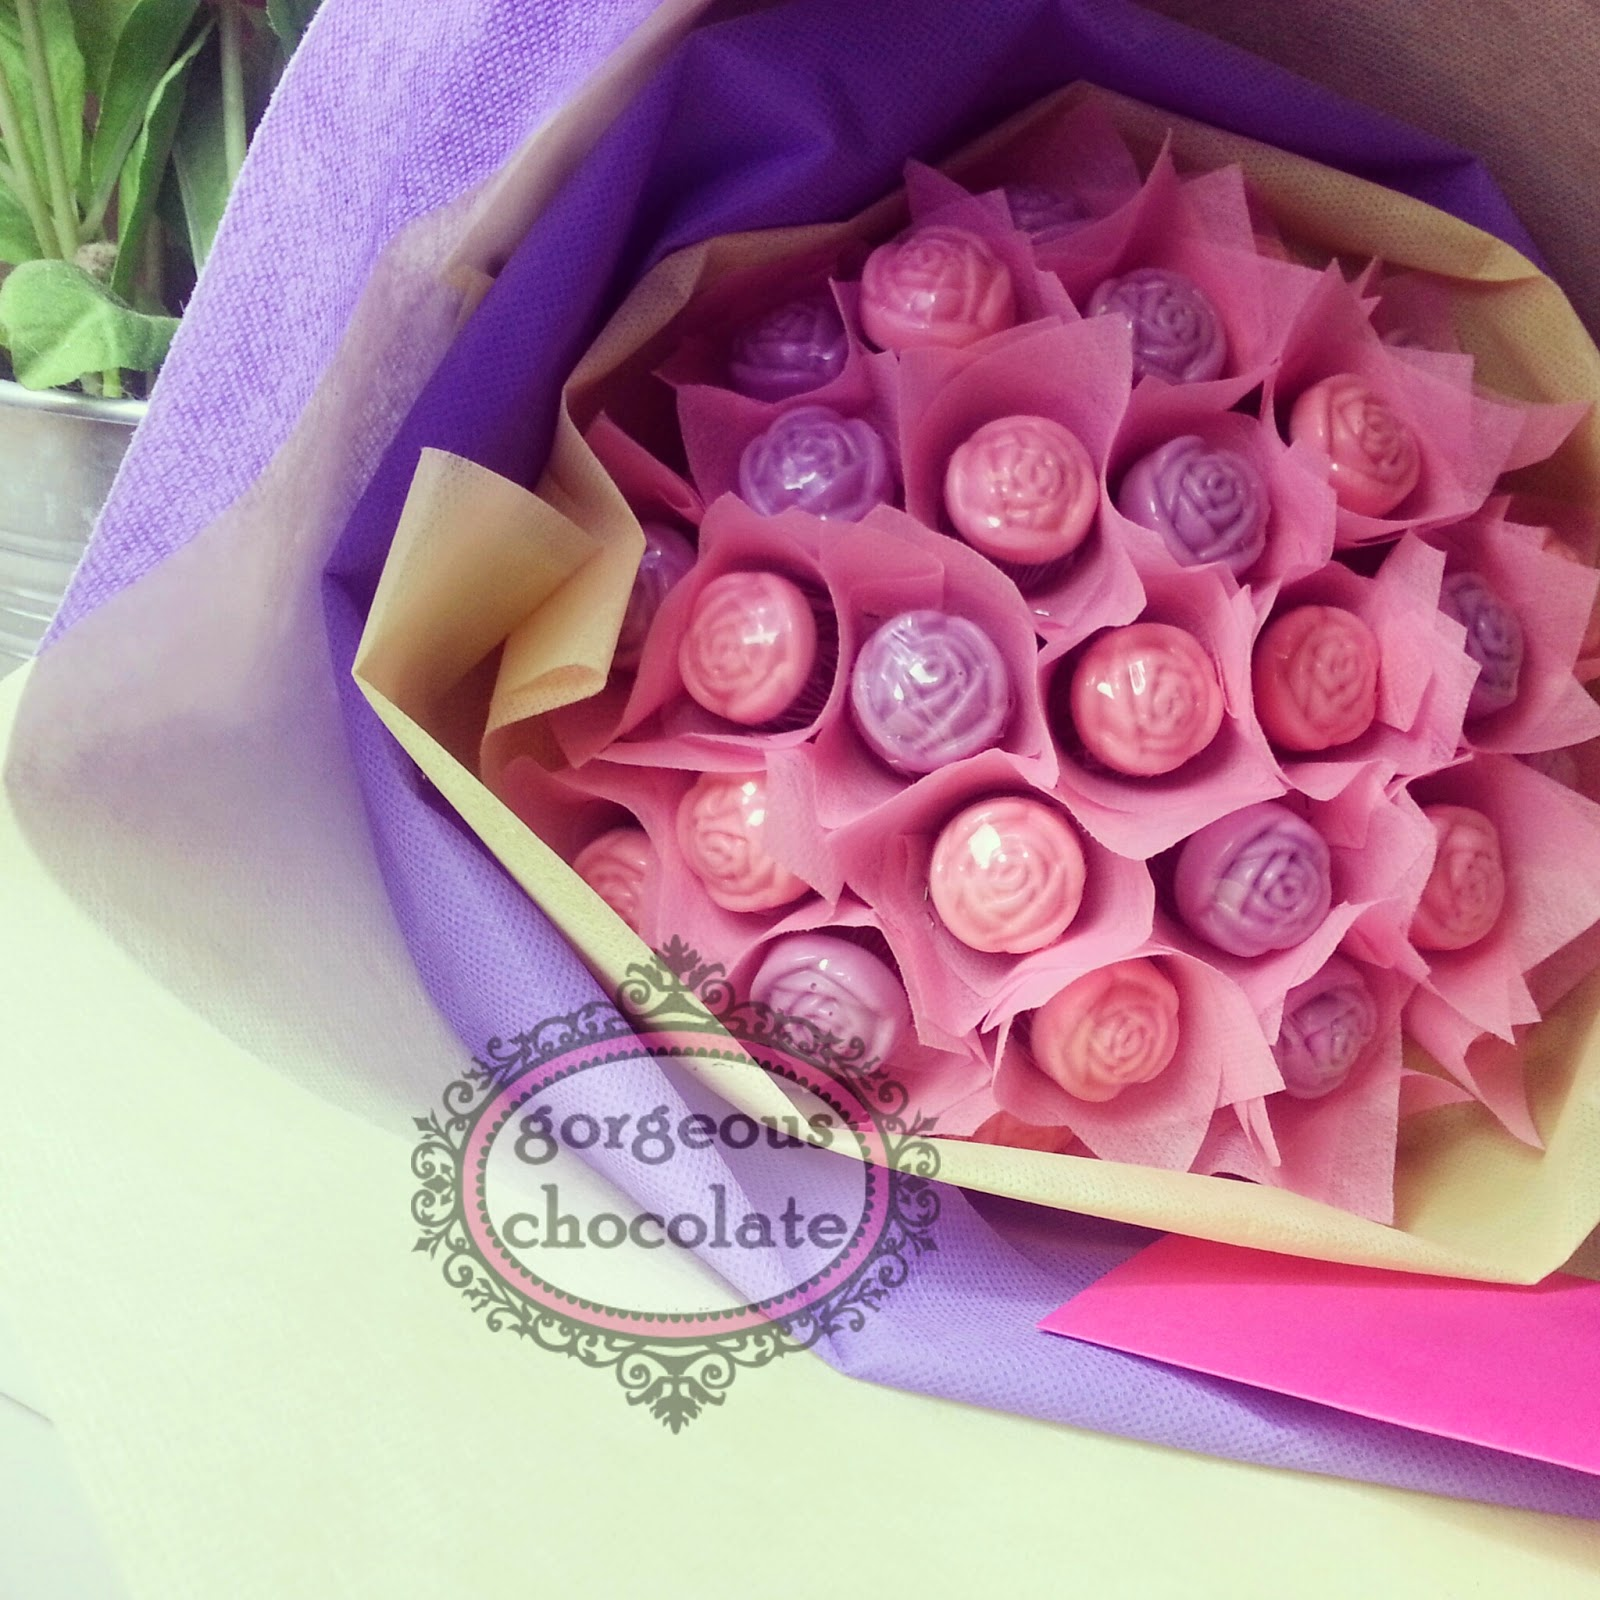 My Gorgeous Homemade Chocolate Chocolate Rose Bouquet